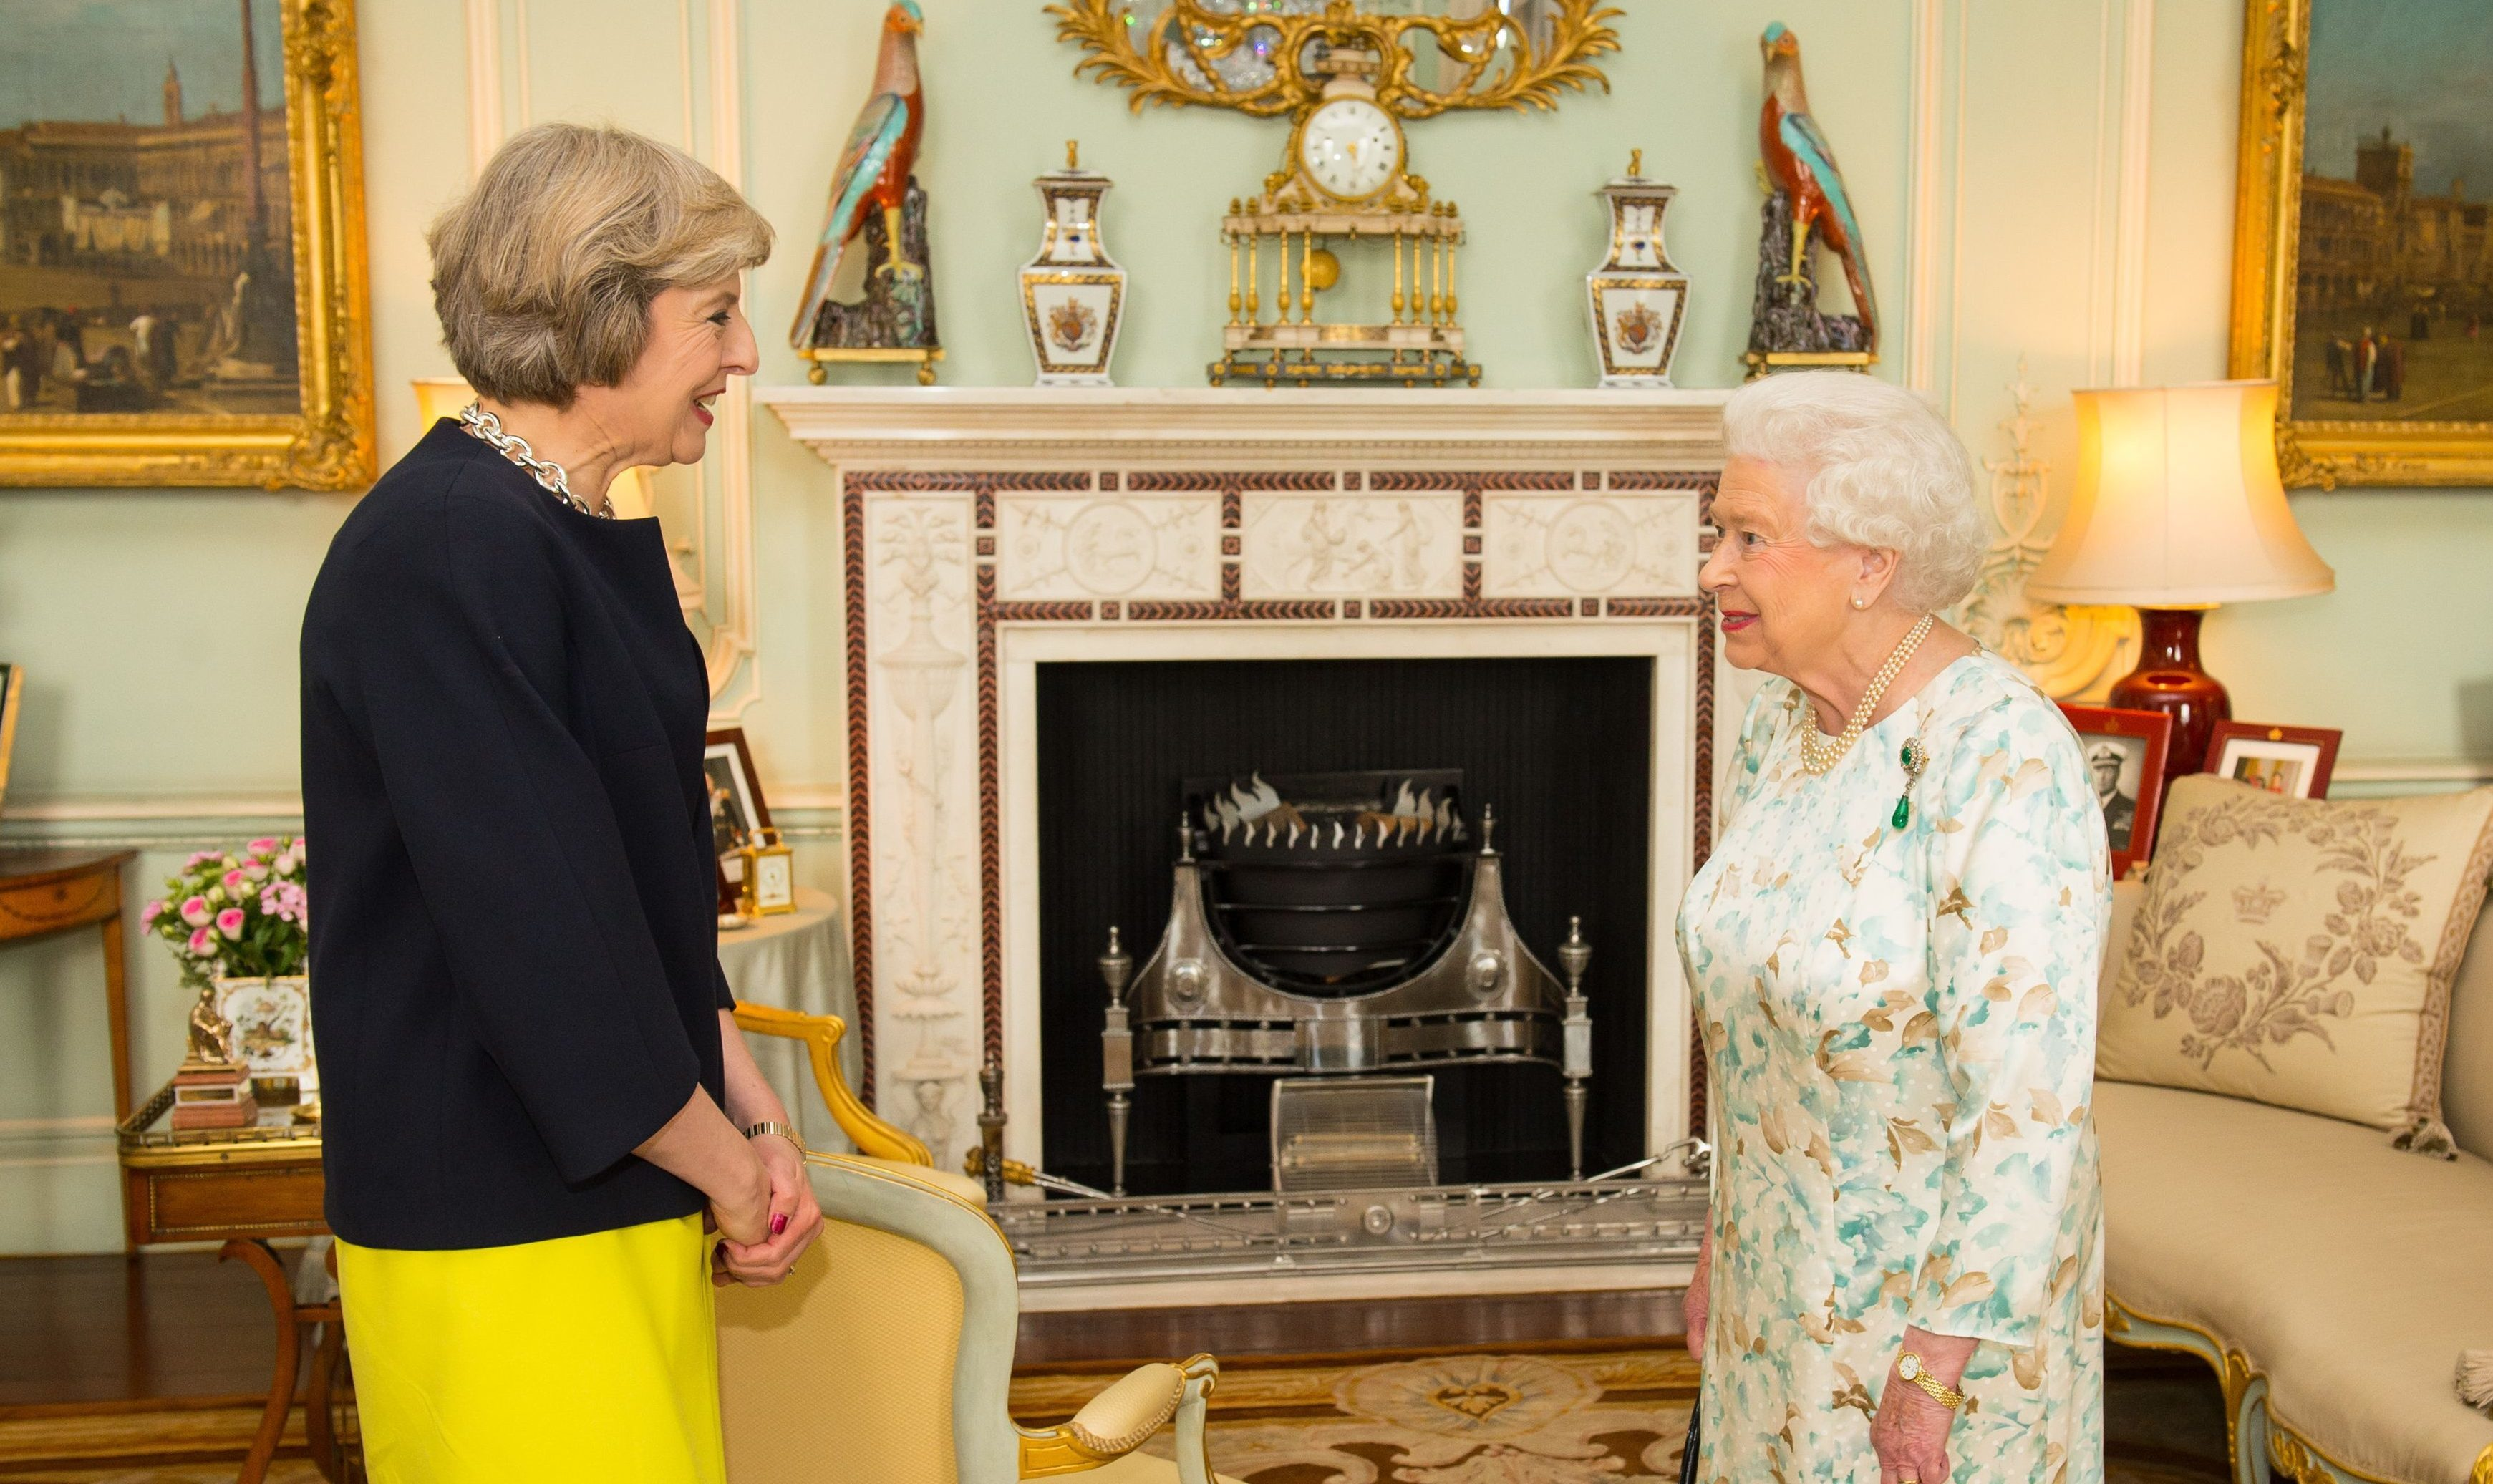 Theresa May officially appointed Prime Minister after meeting the Queen